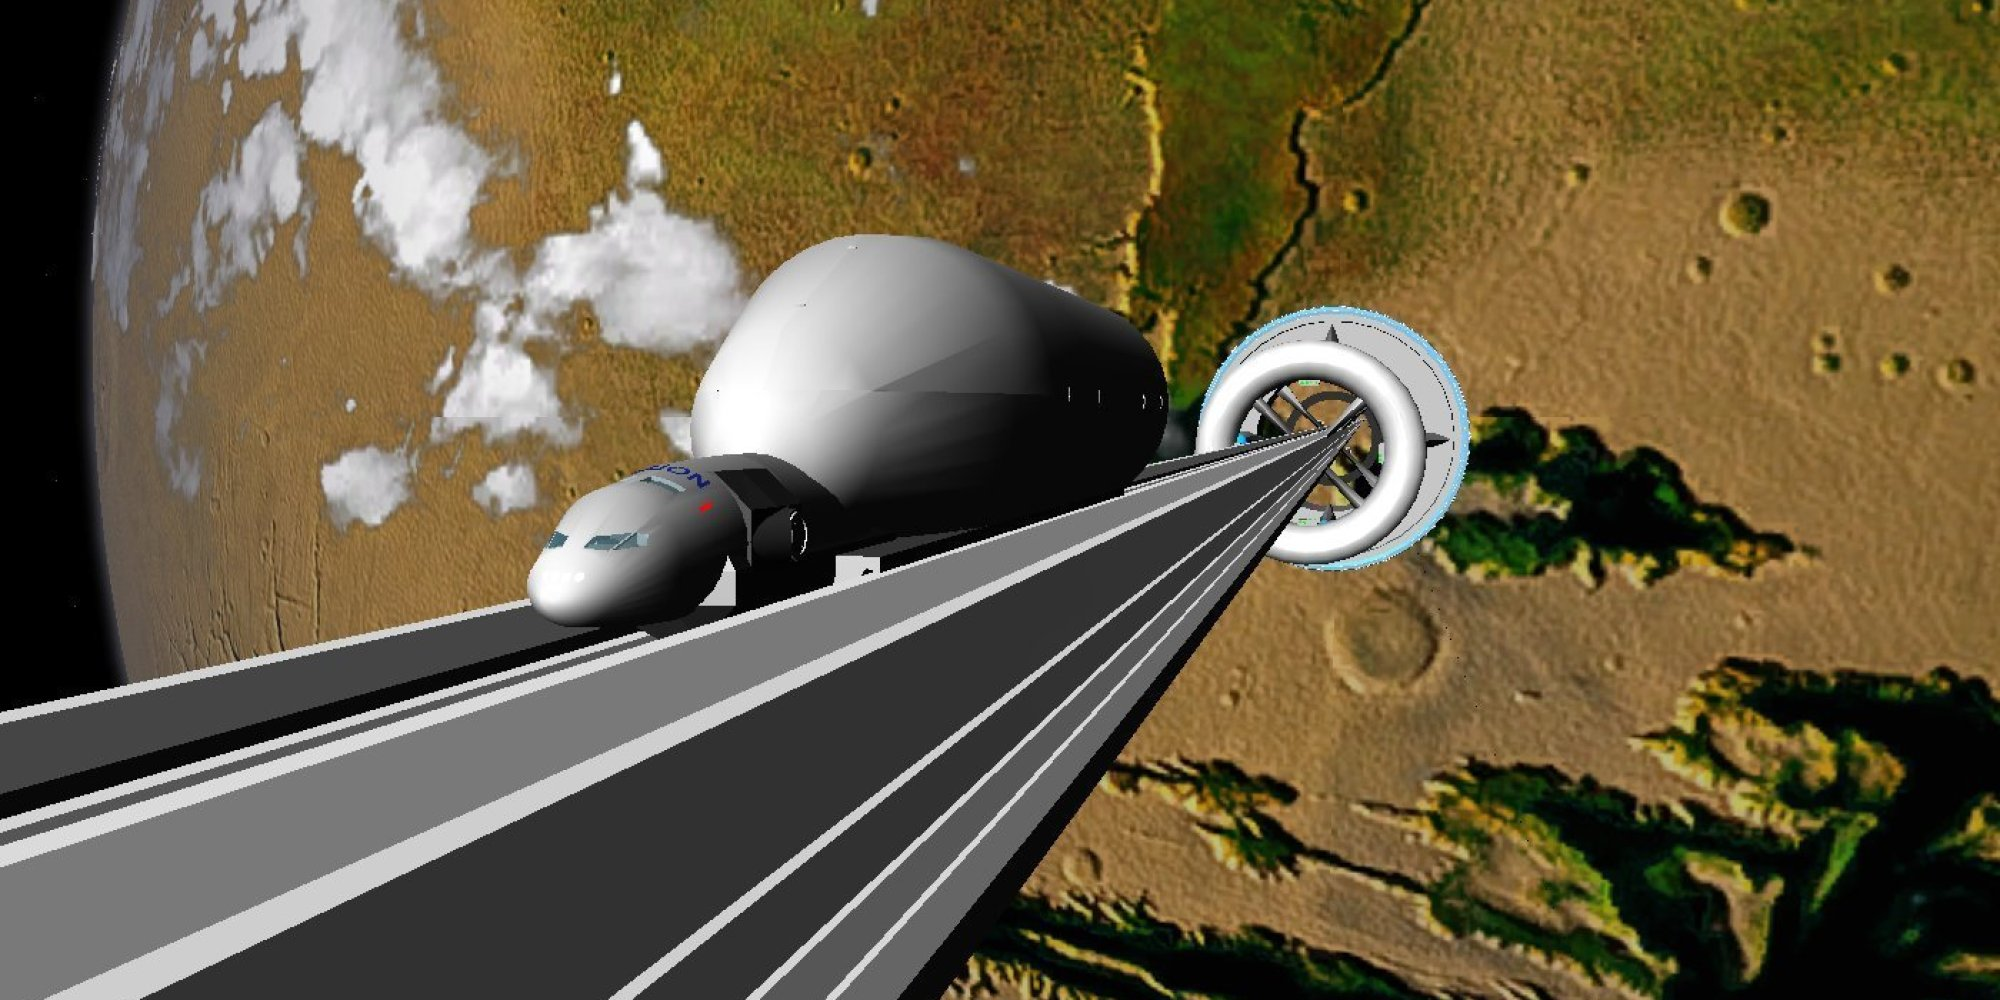 Space Elevator by Thoth Technology is Currently in the Works